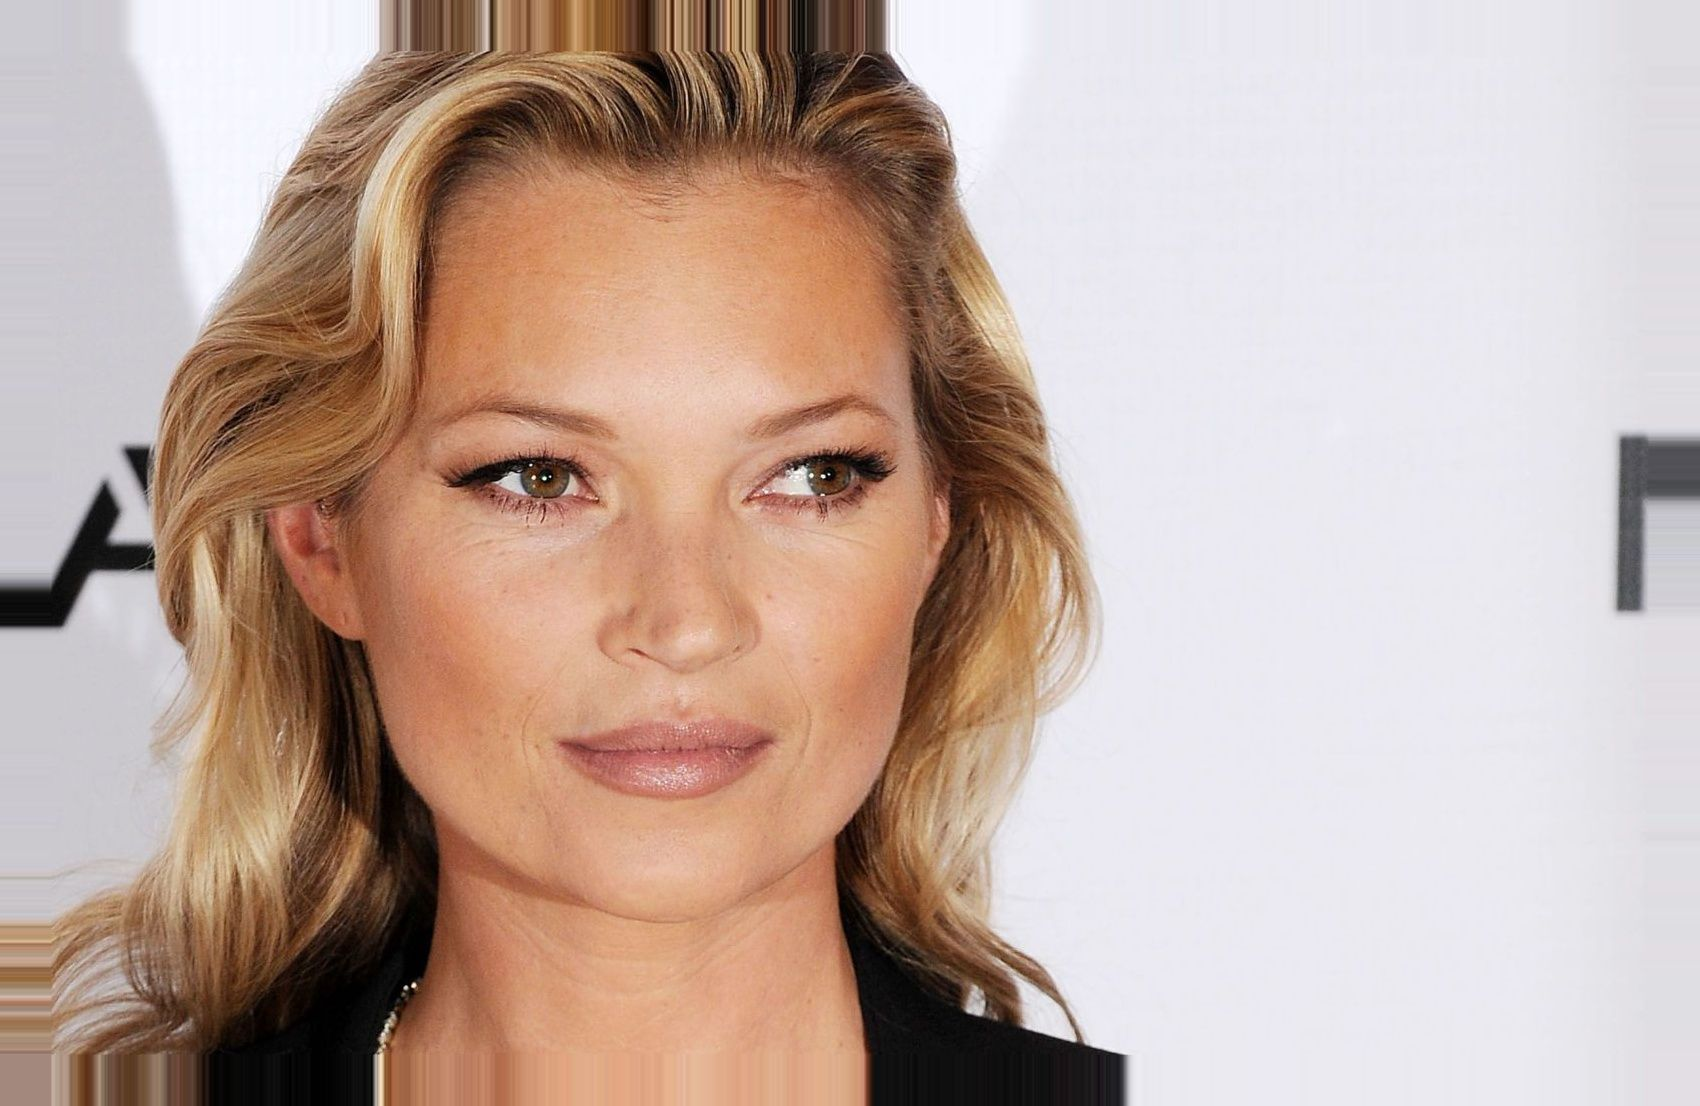 7 Beauty lessons we learnt from Kate Moss… 7 Beauty lessons we learnt from Kate Moss… #kate #moss #katespade #nature #instagram #trees #royals #photography #love #green #actok #naturephotography #outlet #hiking #airshow2016 #forest #blowout #plants #luvv #art #sgtslaughter #travel #poptartfire #outdoors #sigma #explore #springfashion #pnw #royalwedding #hike,</p>